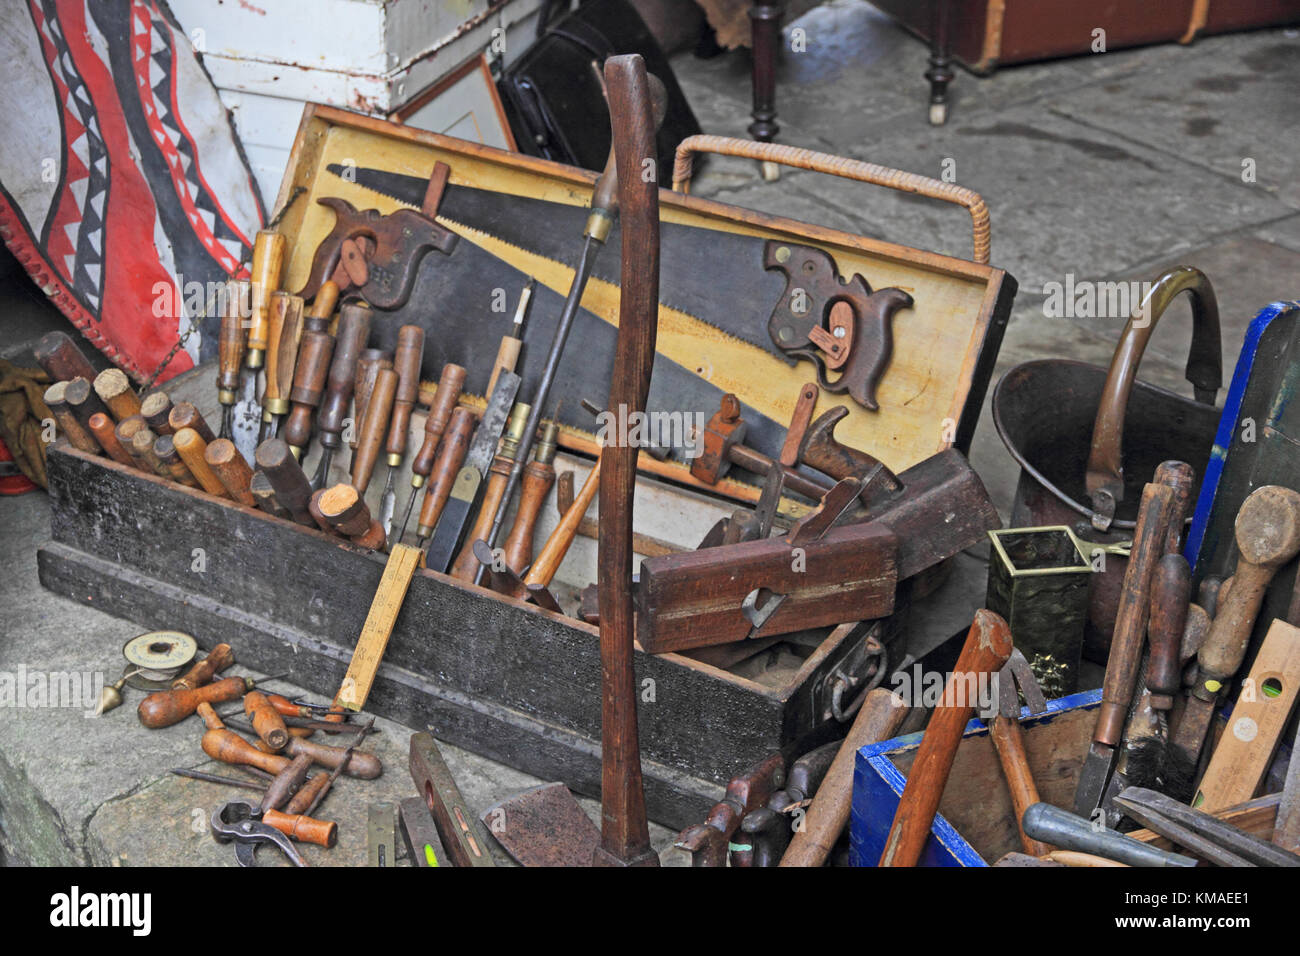 Box Of Old Woodworking Hand Tools For Sale On Market Stall Stock Photo Alamy